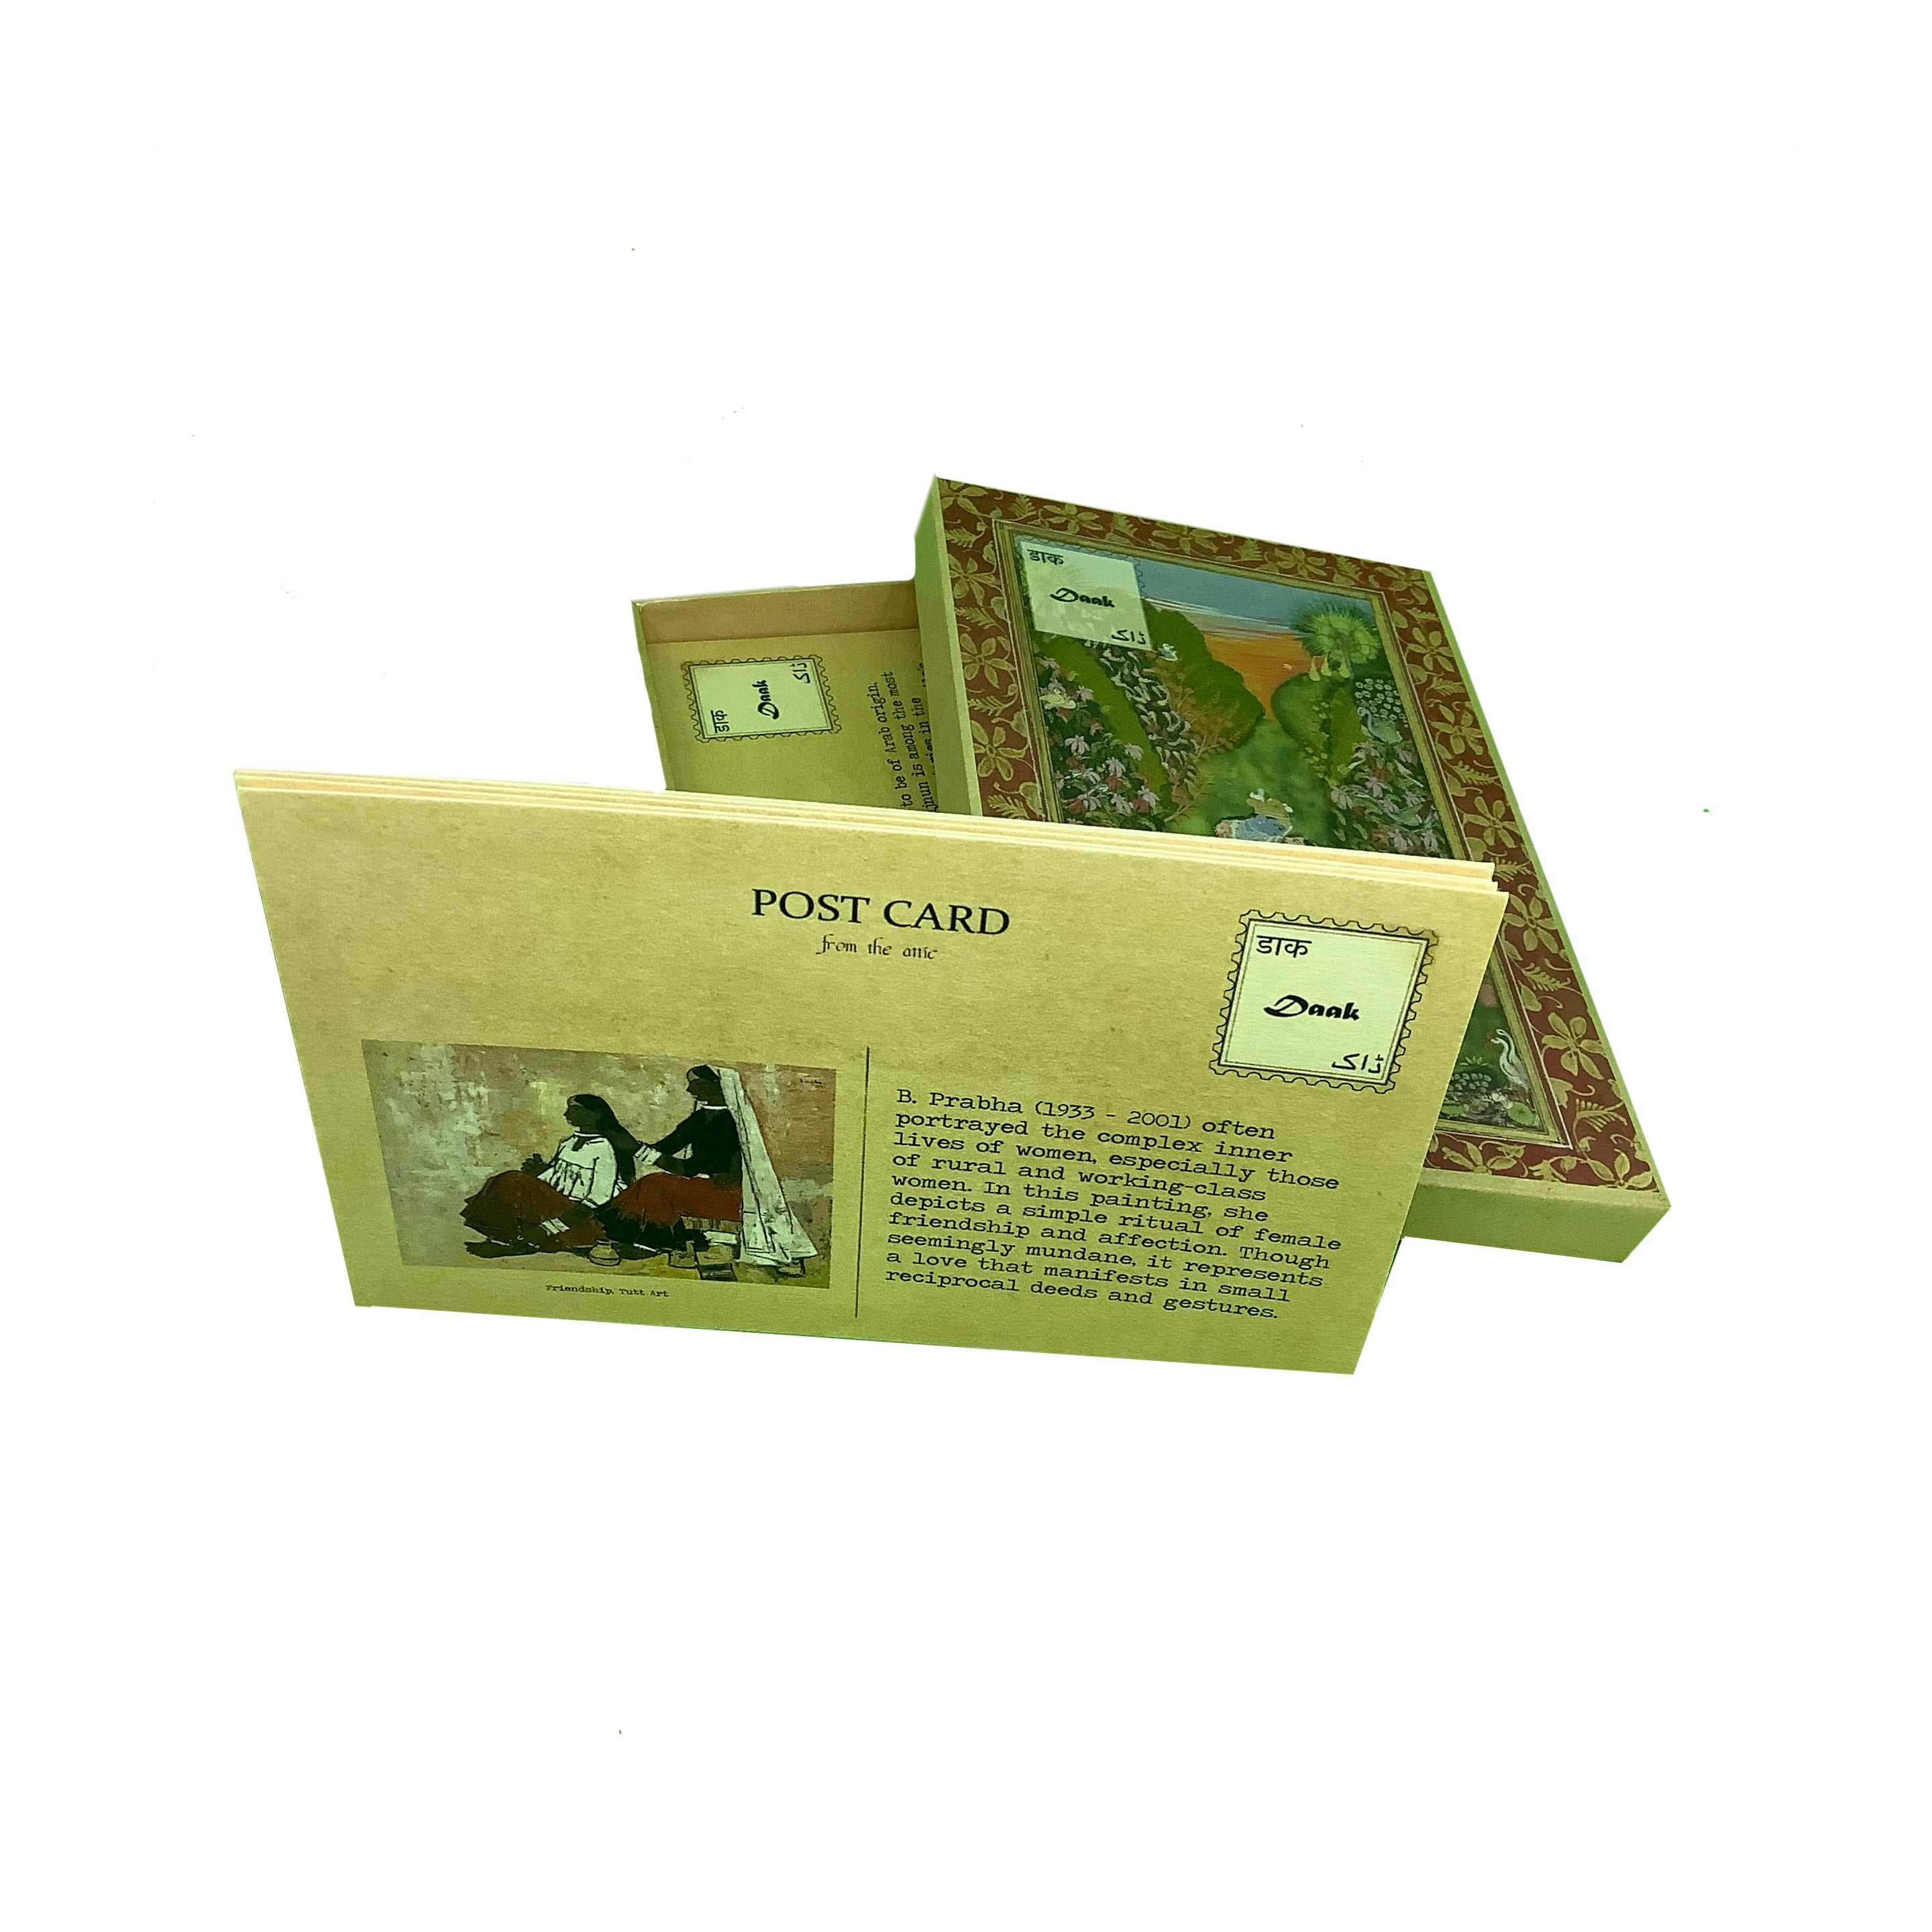 Daak Postcard Box - Postcards of Love from the Subcontinent